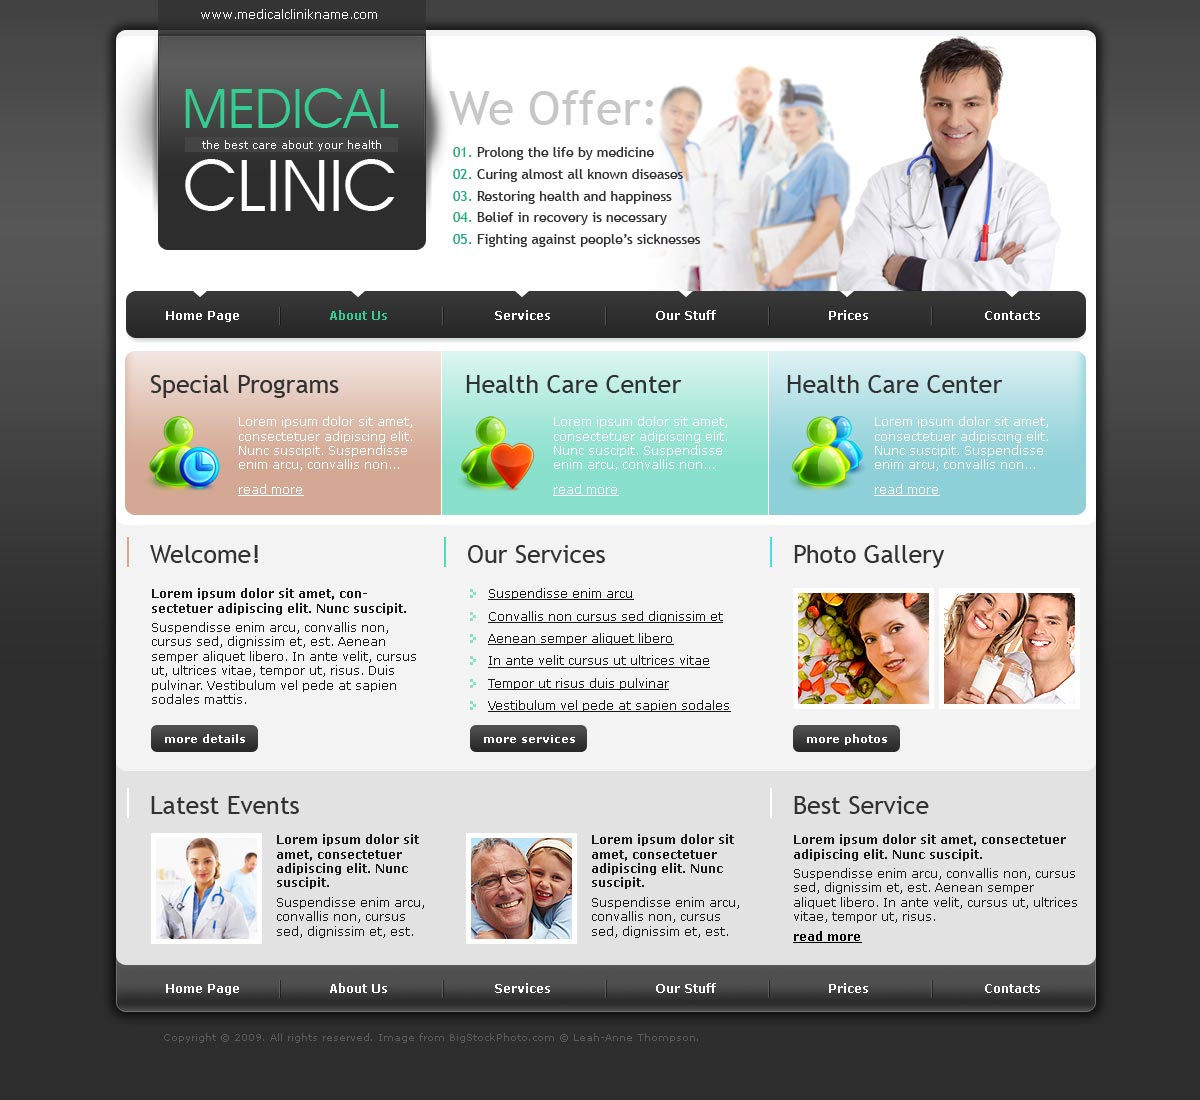 Medical Clinic Html Template Id300110441